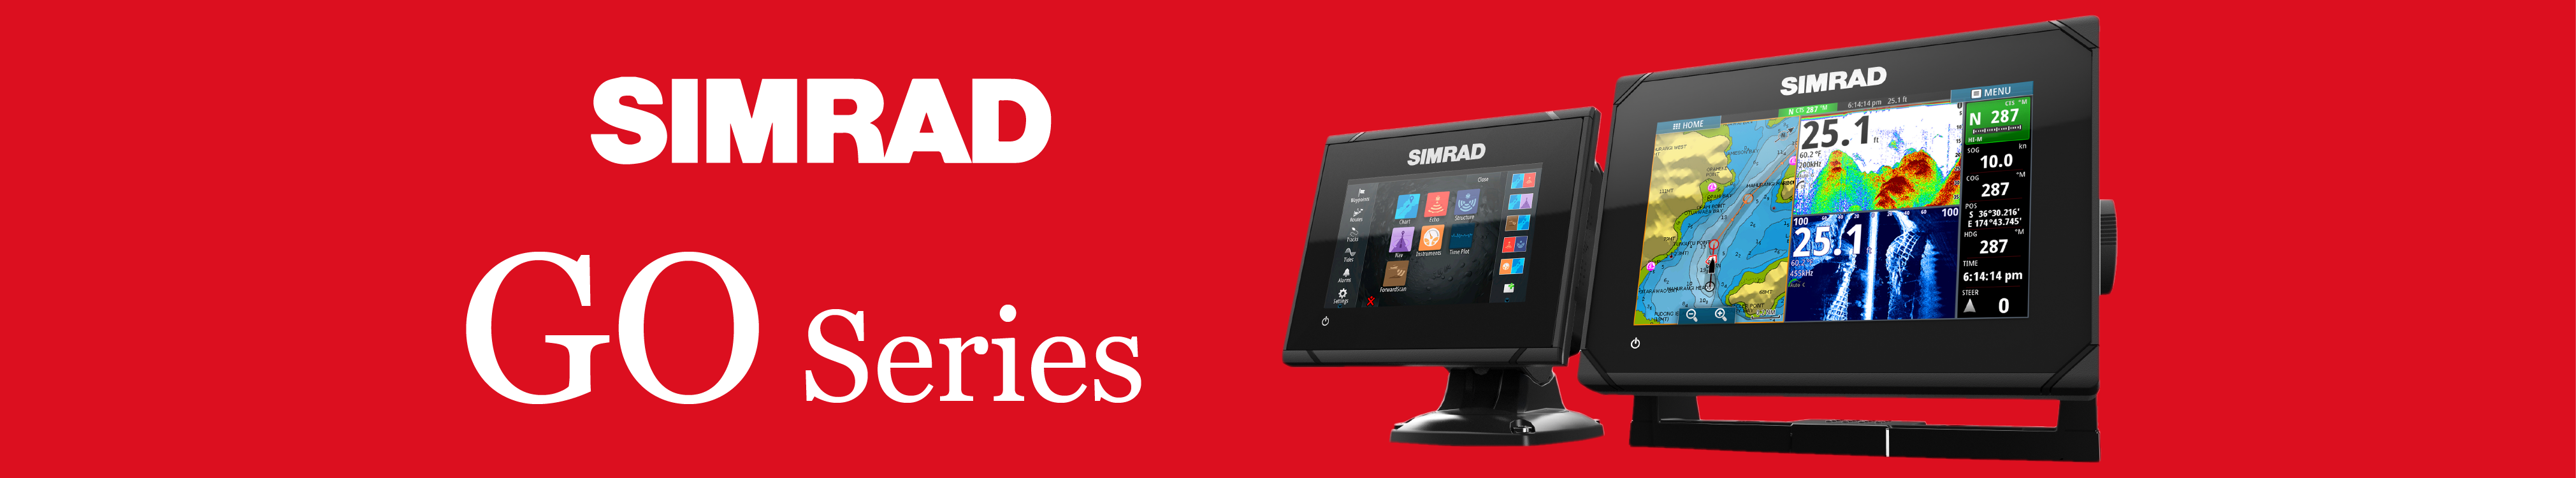 simrad go series multifunction display banner